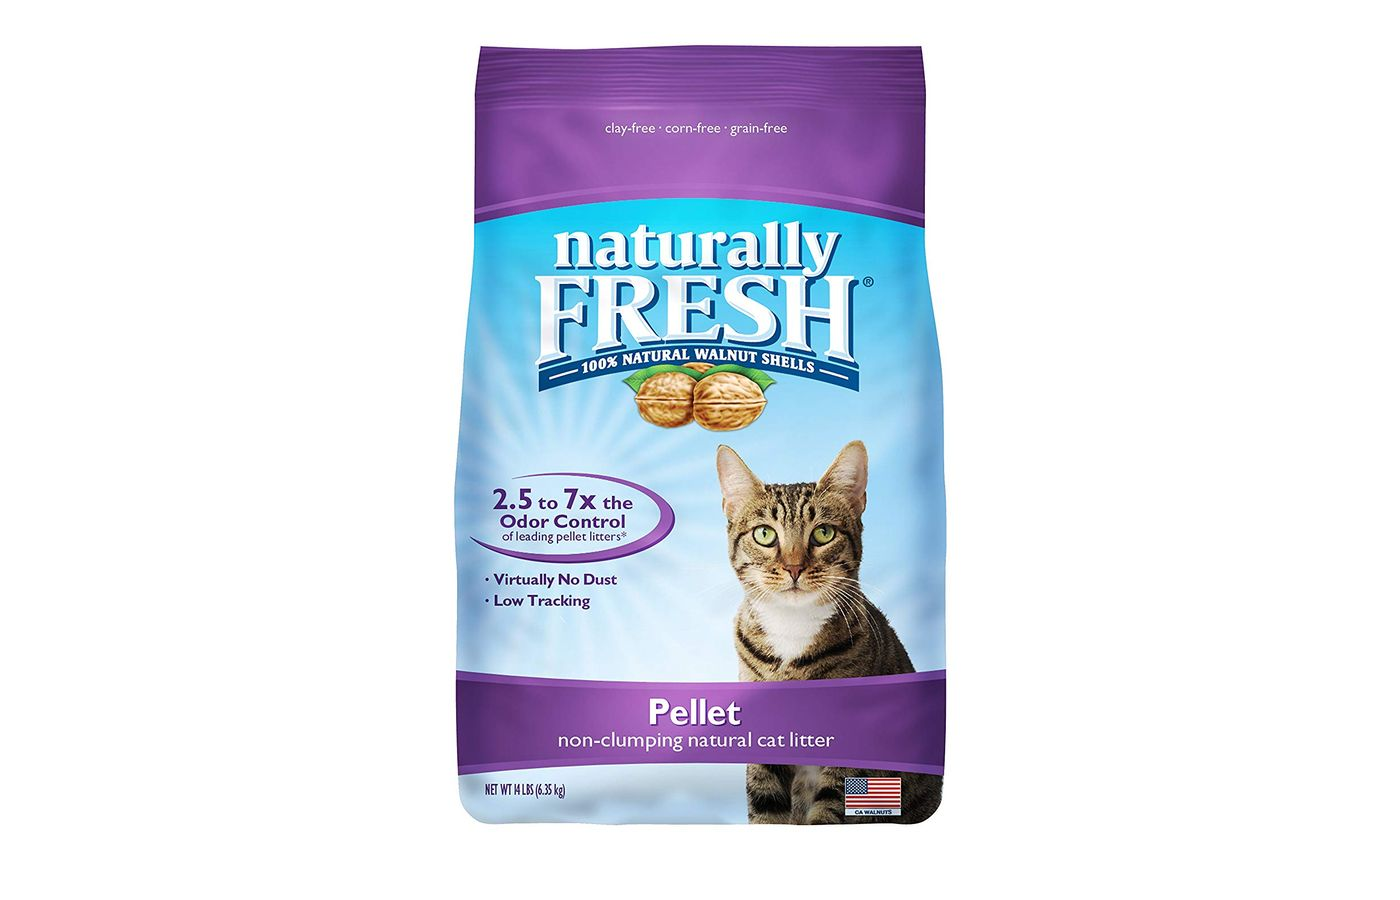 Naturally Fresh Walnut-Based Pellet Non-Clumping Cat Litter